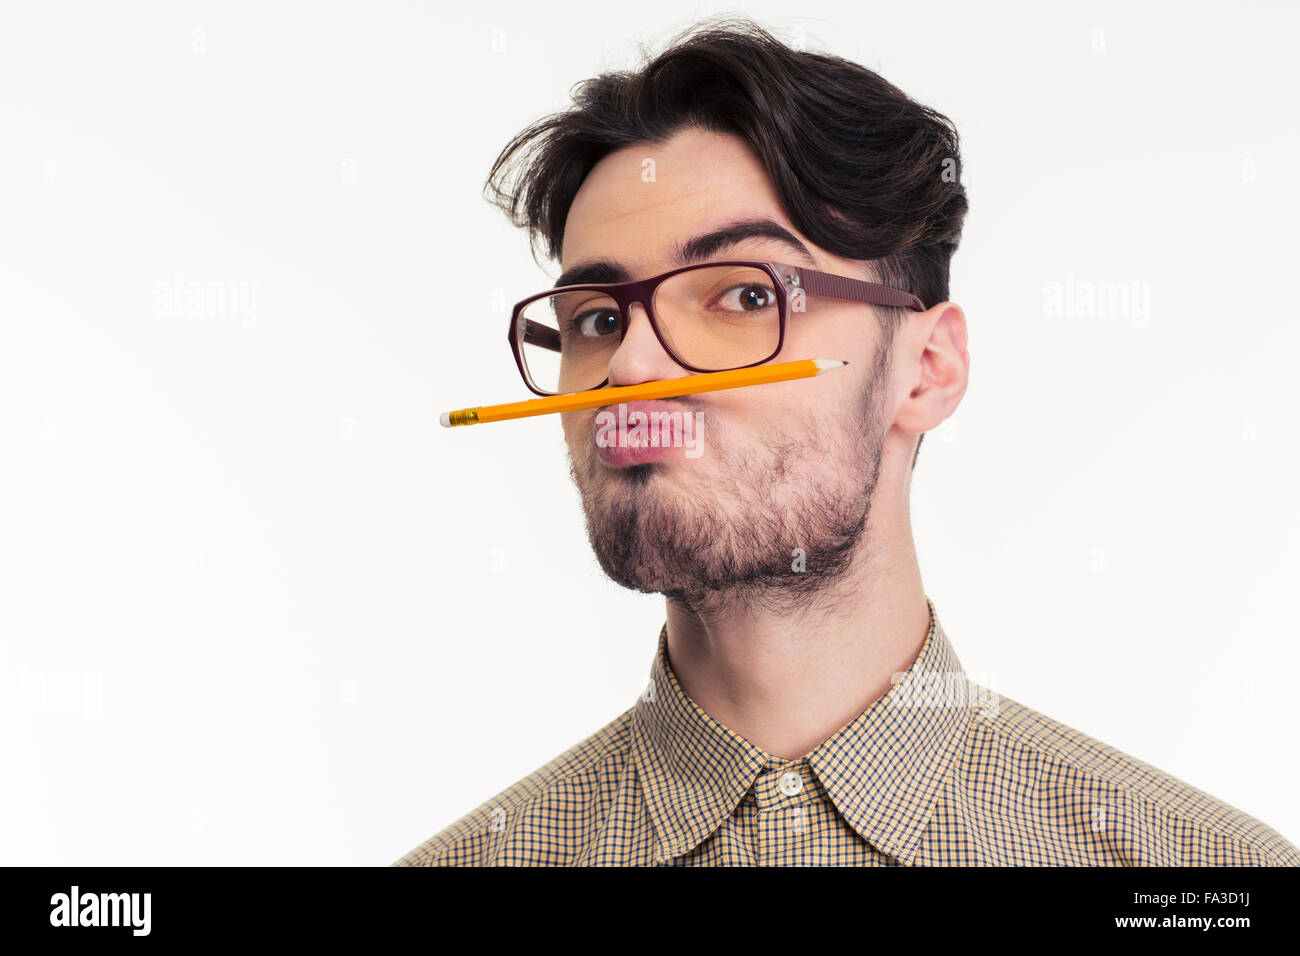 Portrait of a funny man holding pencil between the lip and nose isolated on a white background - Stock Image